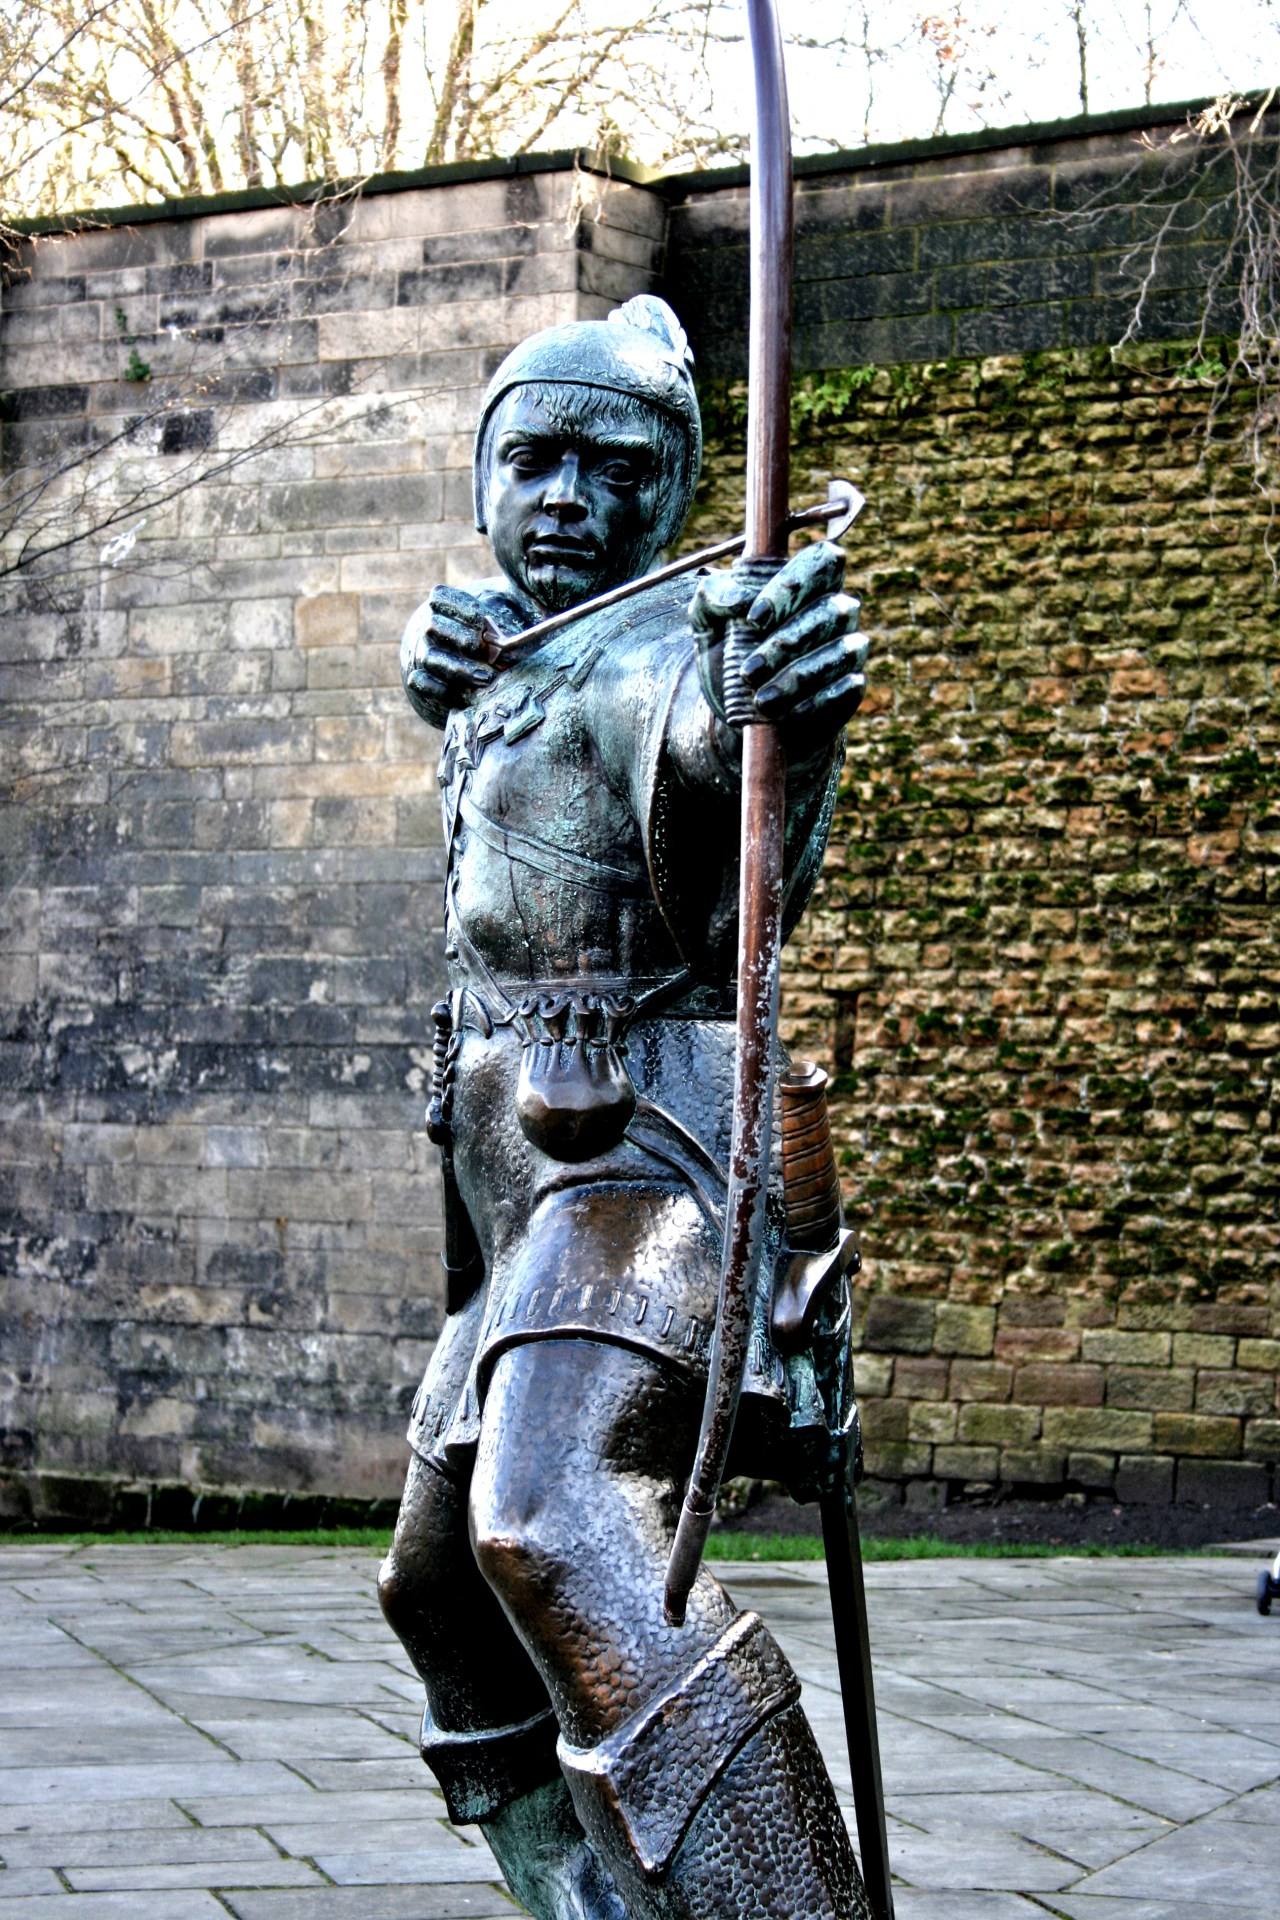 Robin Hood at Nottingham Castle